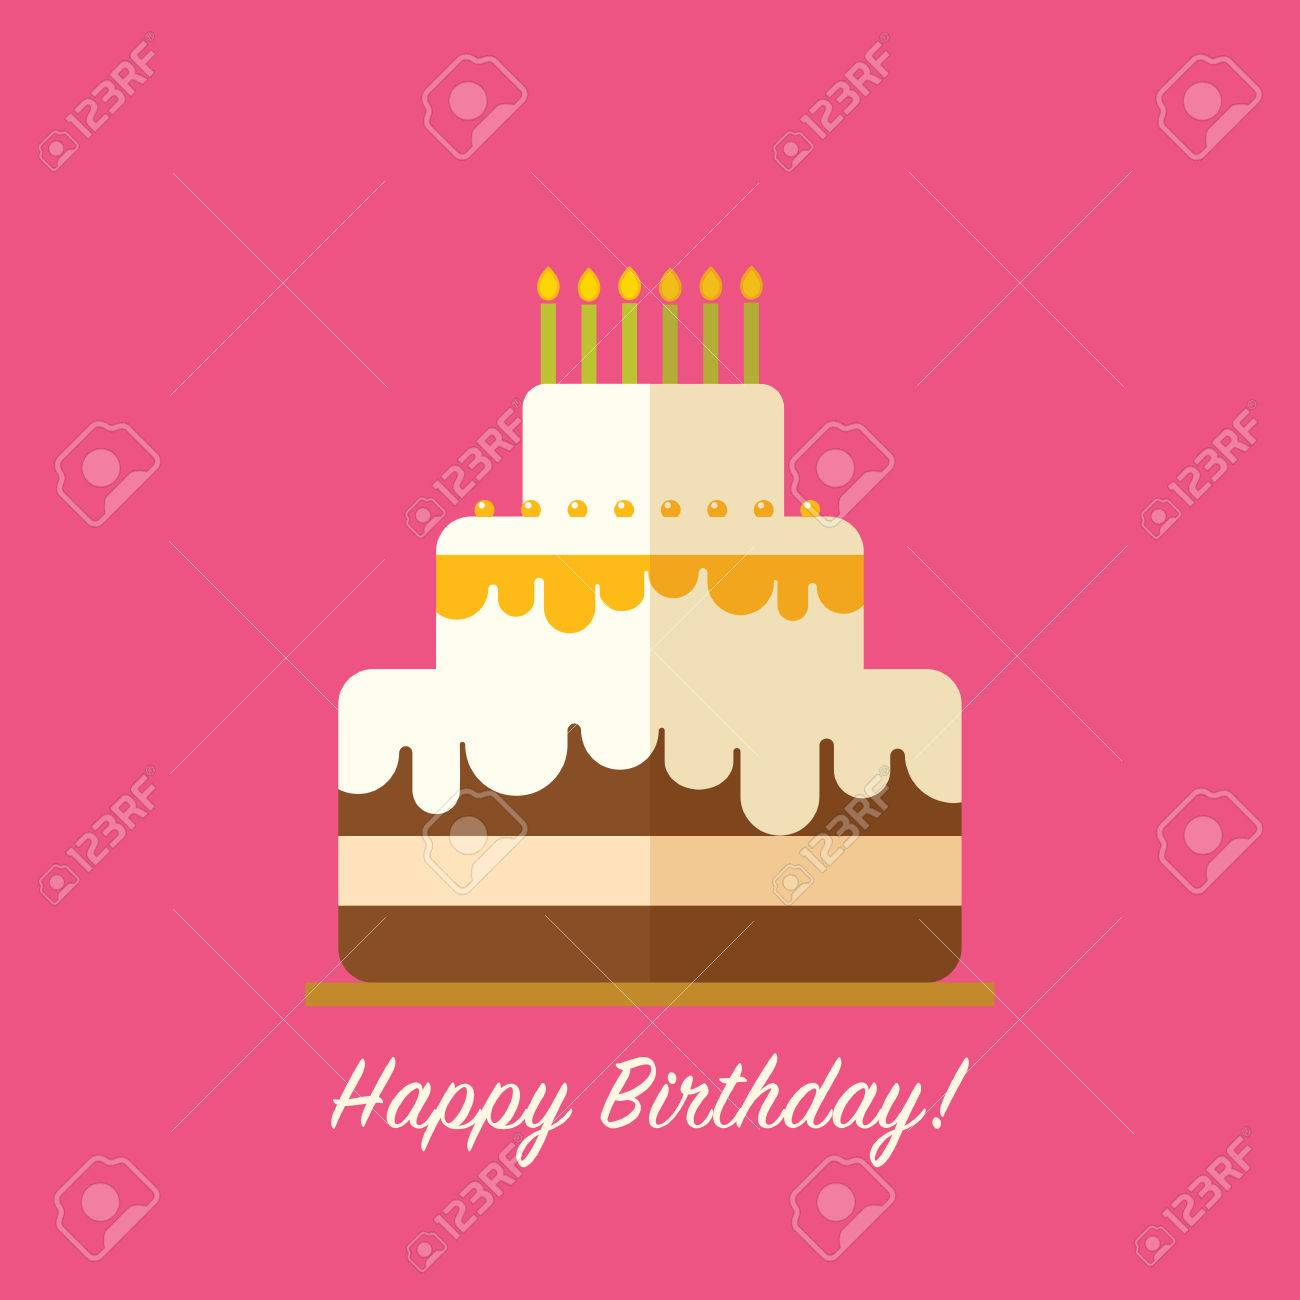 Happy Birthday Cake For Greeting Card Design Isolated In Flat